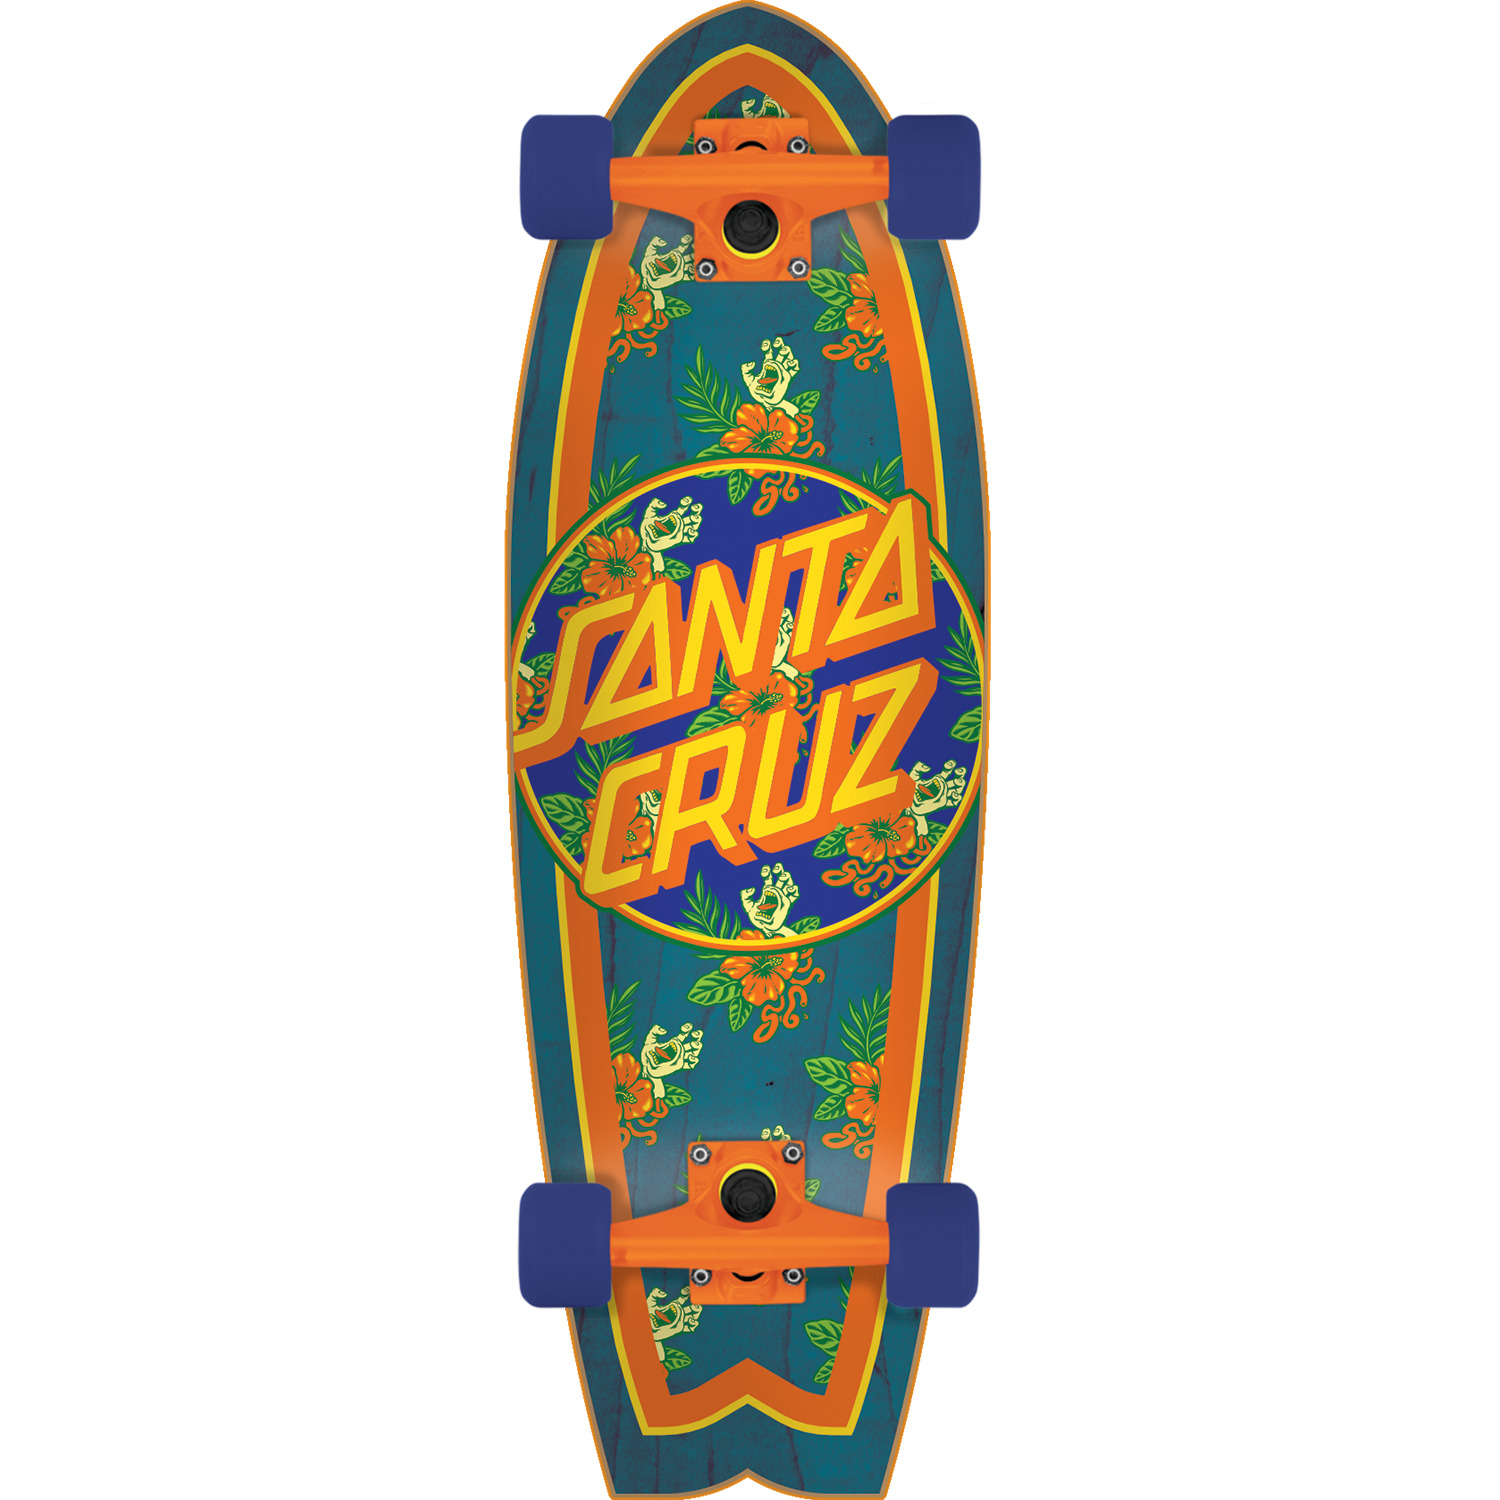 Santa Cruz Ratboy Shark LG Cruiser Skateboards